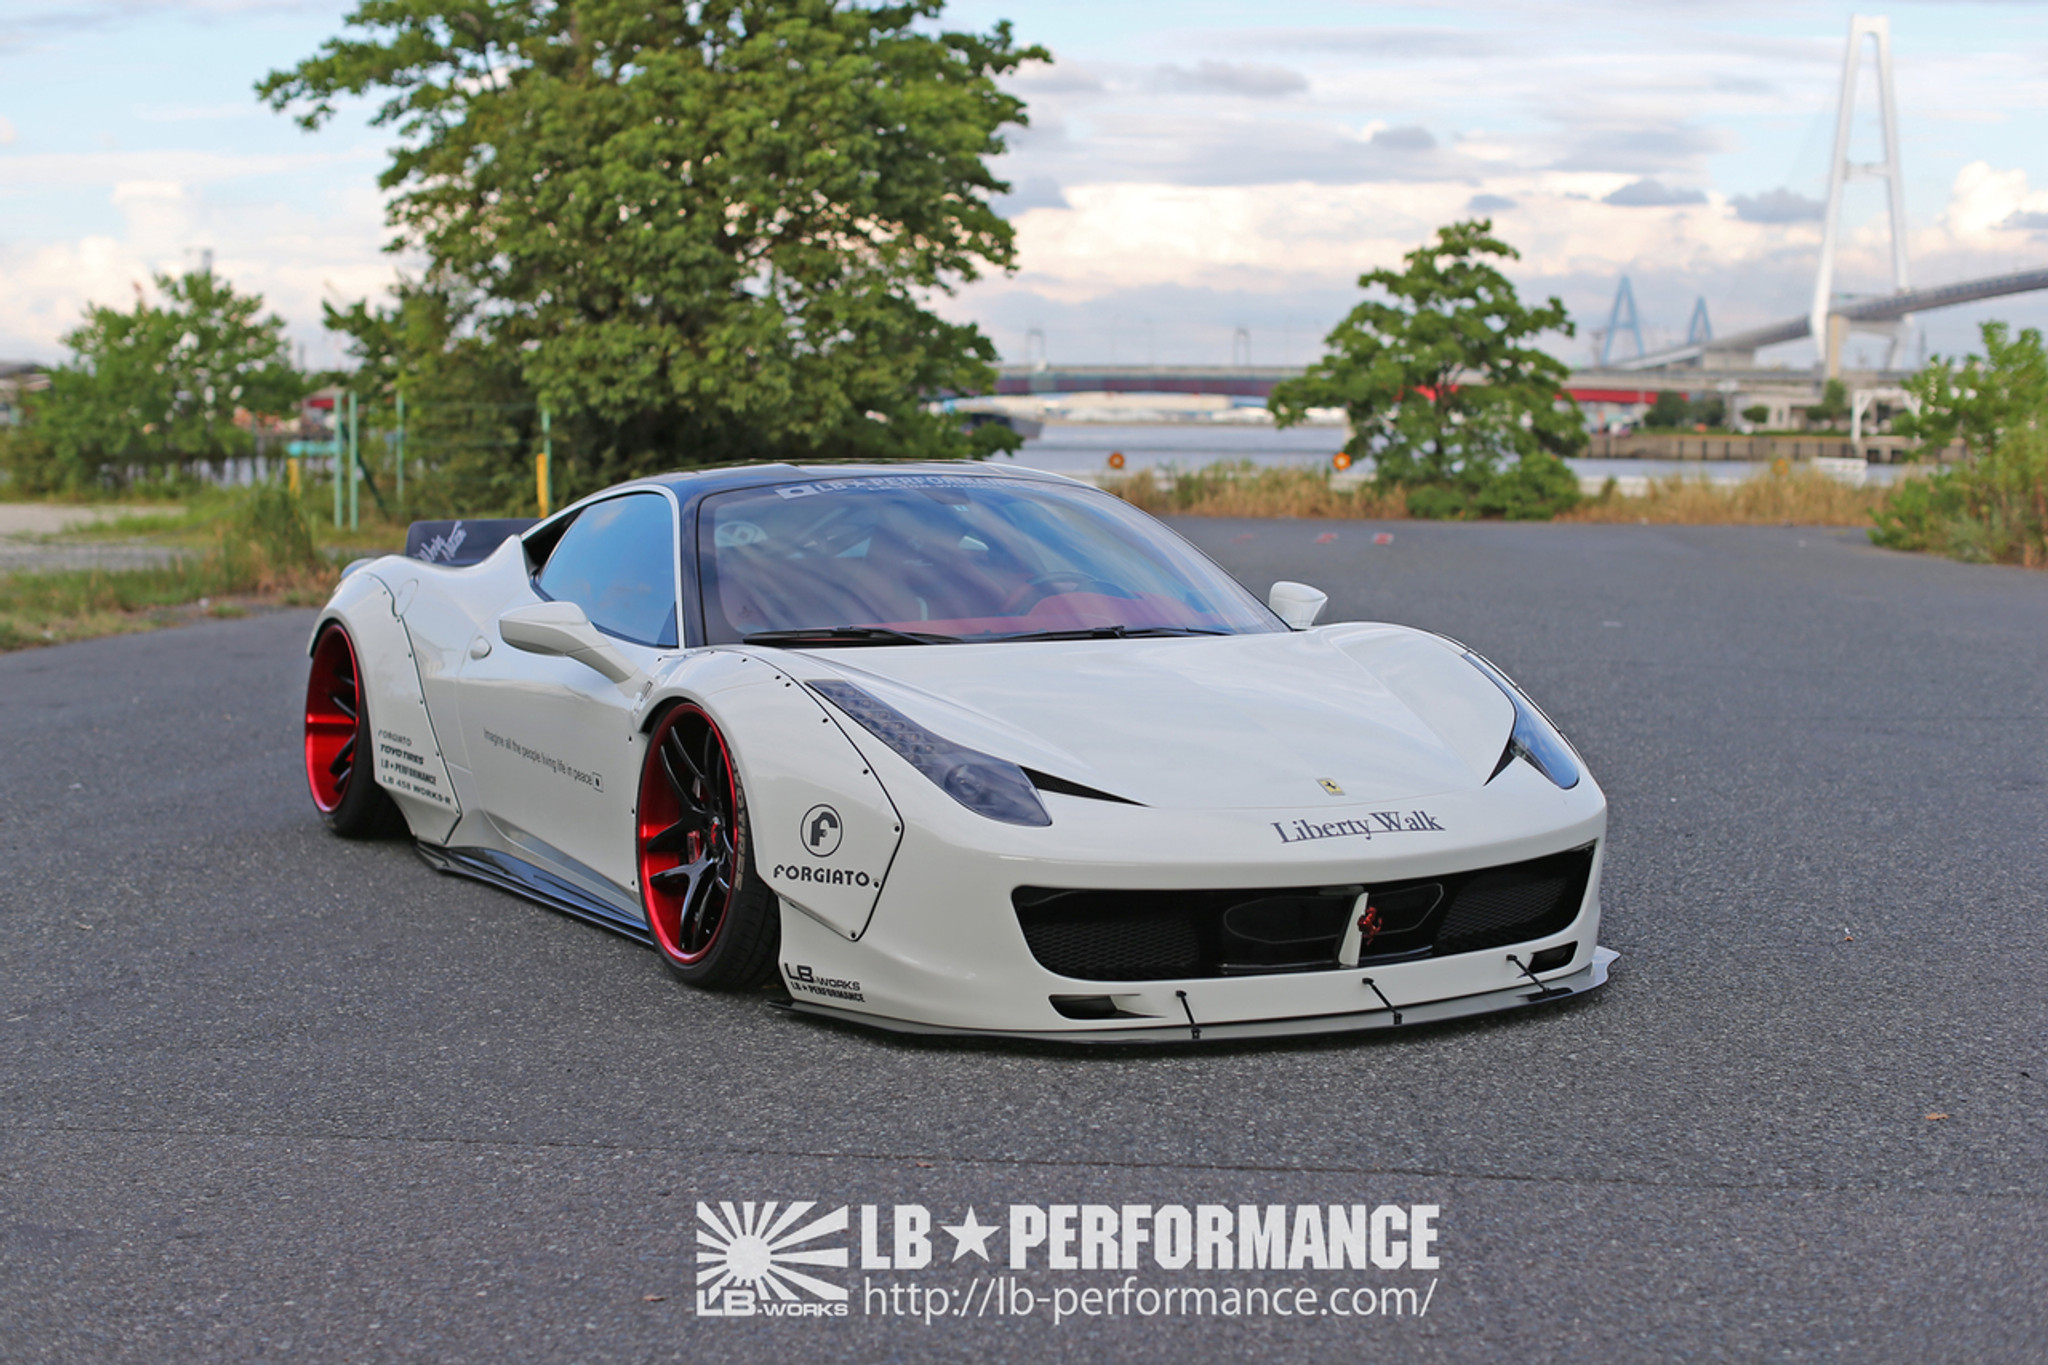 ferrari 458 italia liberty walk body kit meduza design ltd. Black Bedroom Furniture Sets. Home Design Ideas